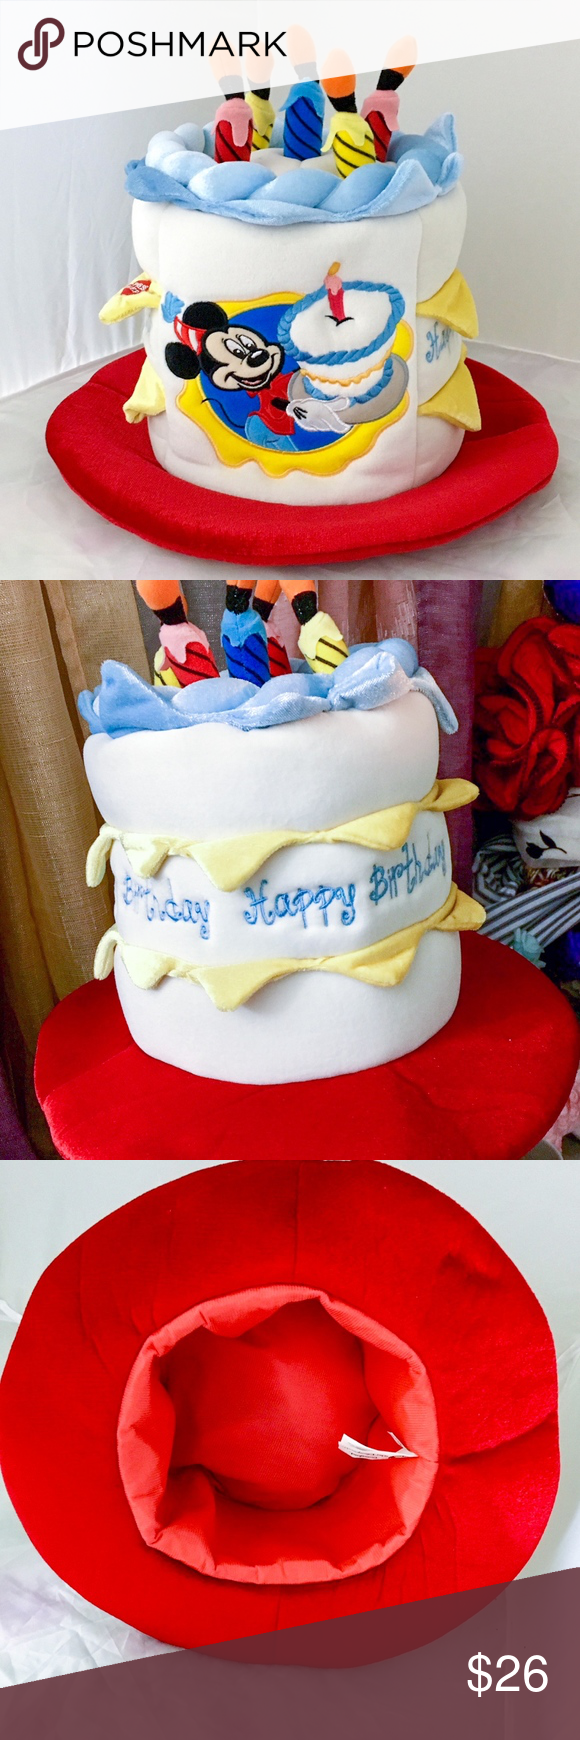 Disney Happy Birthday Cake Hat Fun In Shape Of A With Battery Operated